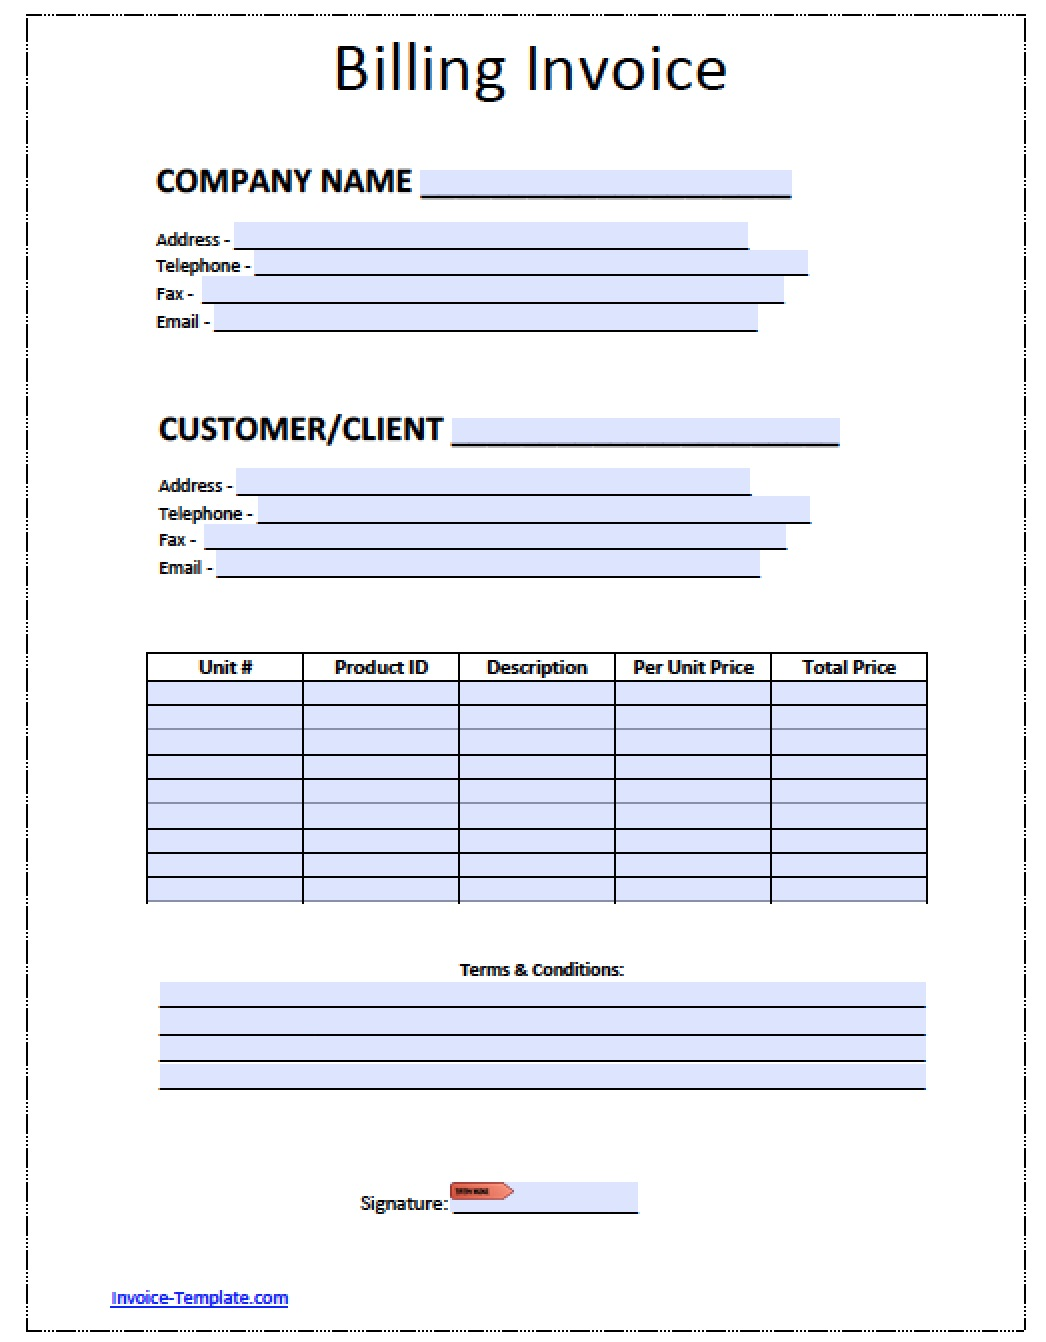 Coolmathgamesus  Terrific Billing Invoice Invoices Faq U Cloudflare Support Billing  With Outstanding Free Billing Invoice Template  Excel  Pdf  Word Doc  Billing With Beautiful Invoice Finance Brokers Also Audi A Invoice Price In Addition Ms Word Invoice Template Free Download And Invoice Billing Software Free Download As Well As Builders Invoice Additionally Invoice Systems For Small Business From Happytomco With Coolmathgamesus  Outstanding Billing Invoice Invoices Faq U Cloudflare Support Billing  With Beautiful Free Billing Invoice Template  Excel  Pdf  Word Doc  Billing And Terrific Invoice Finance Brokers Also Audi A Invoice Price In Addition Ms Word Invoice Template Free Download From Happytomco